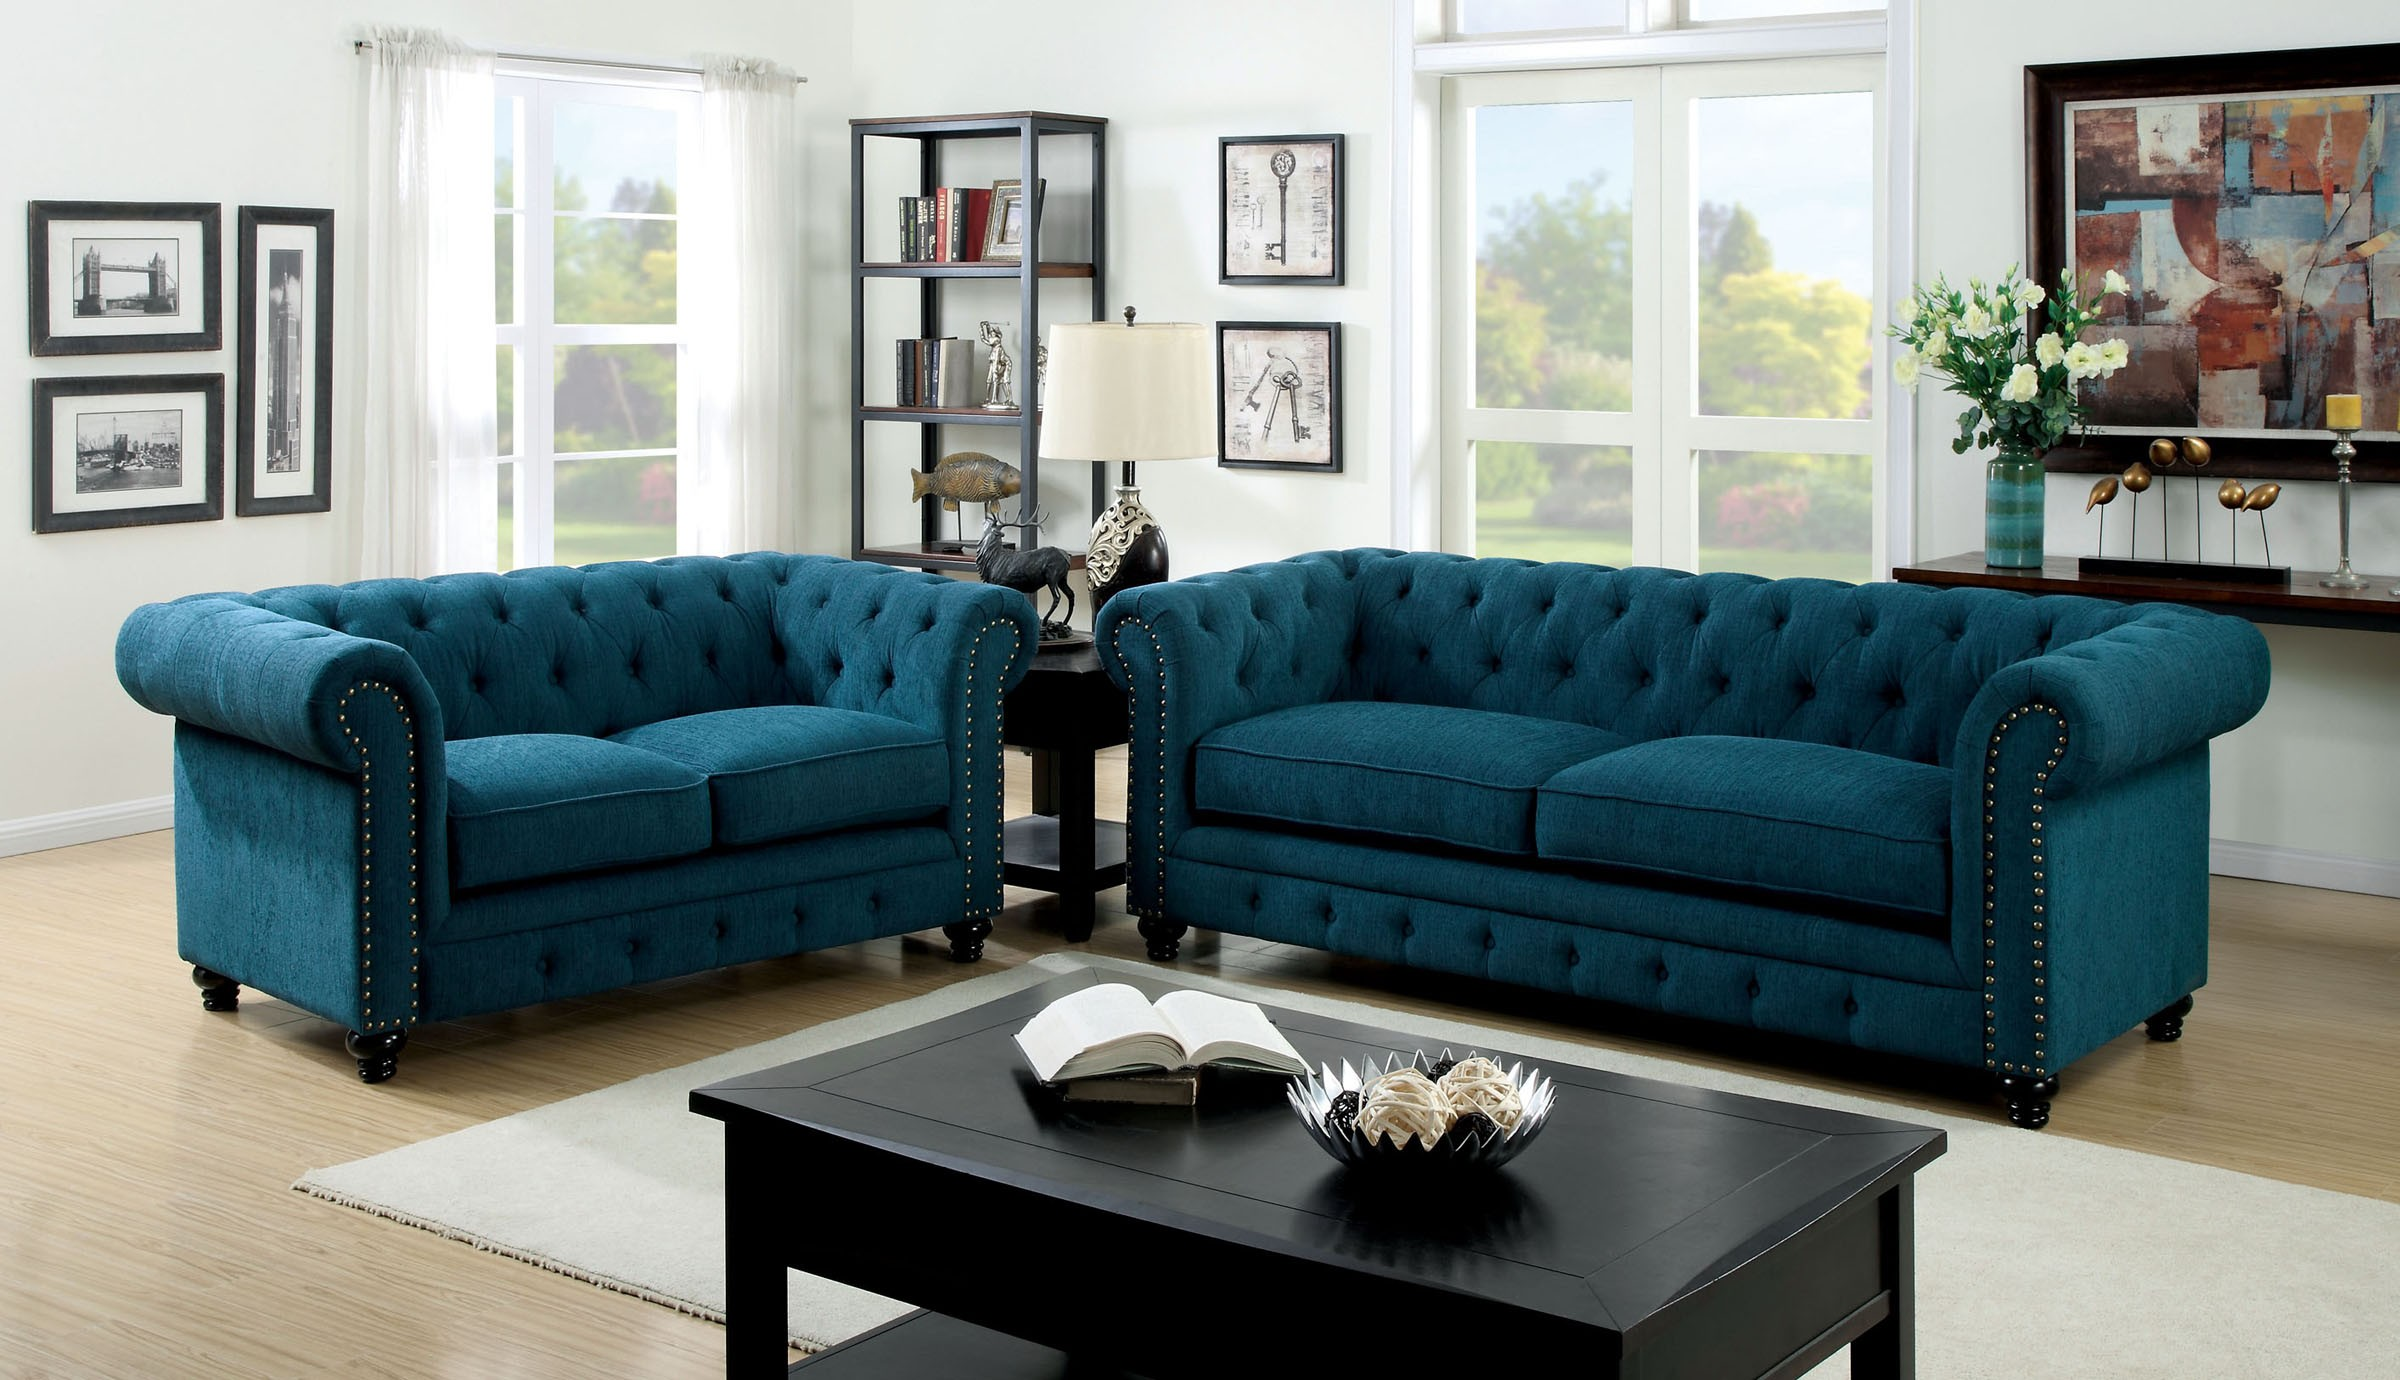 Stanford dark teal fabric living room set from furniture for Furniture of america customer service